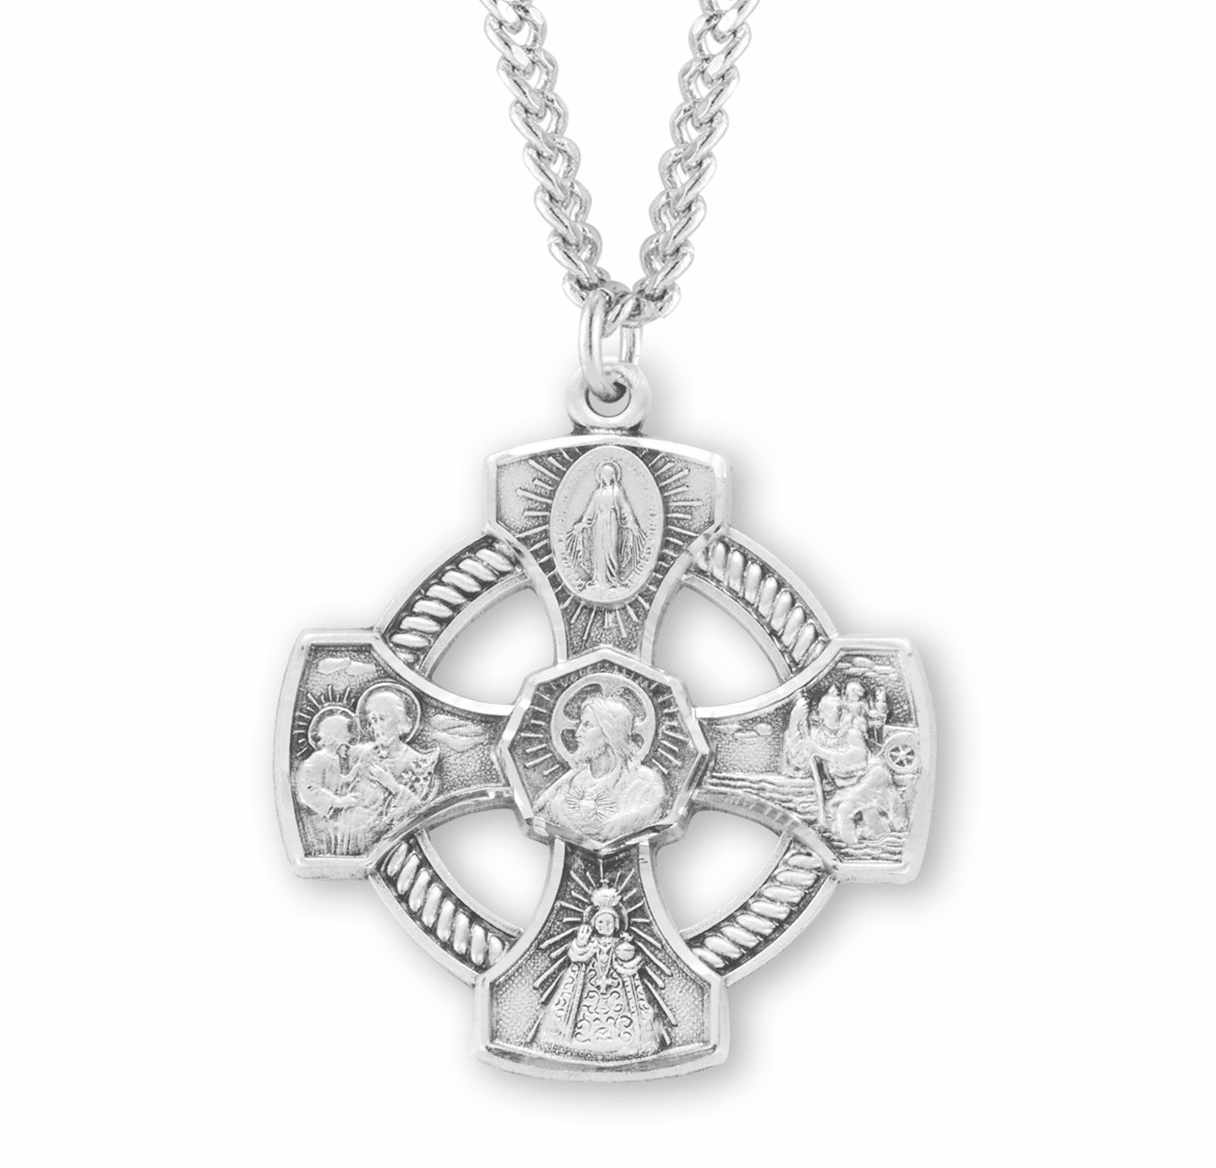 Pierced Circle Roped Cross Sterling Silver Four-Way Medal Necklace by HMH Religious